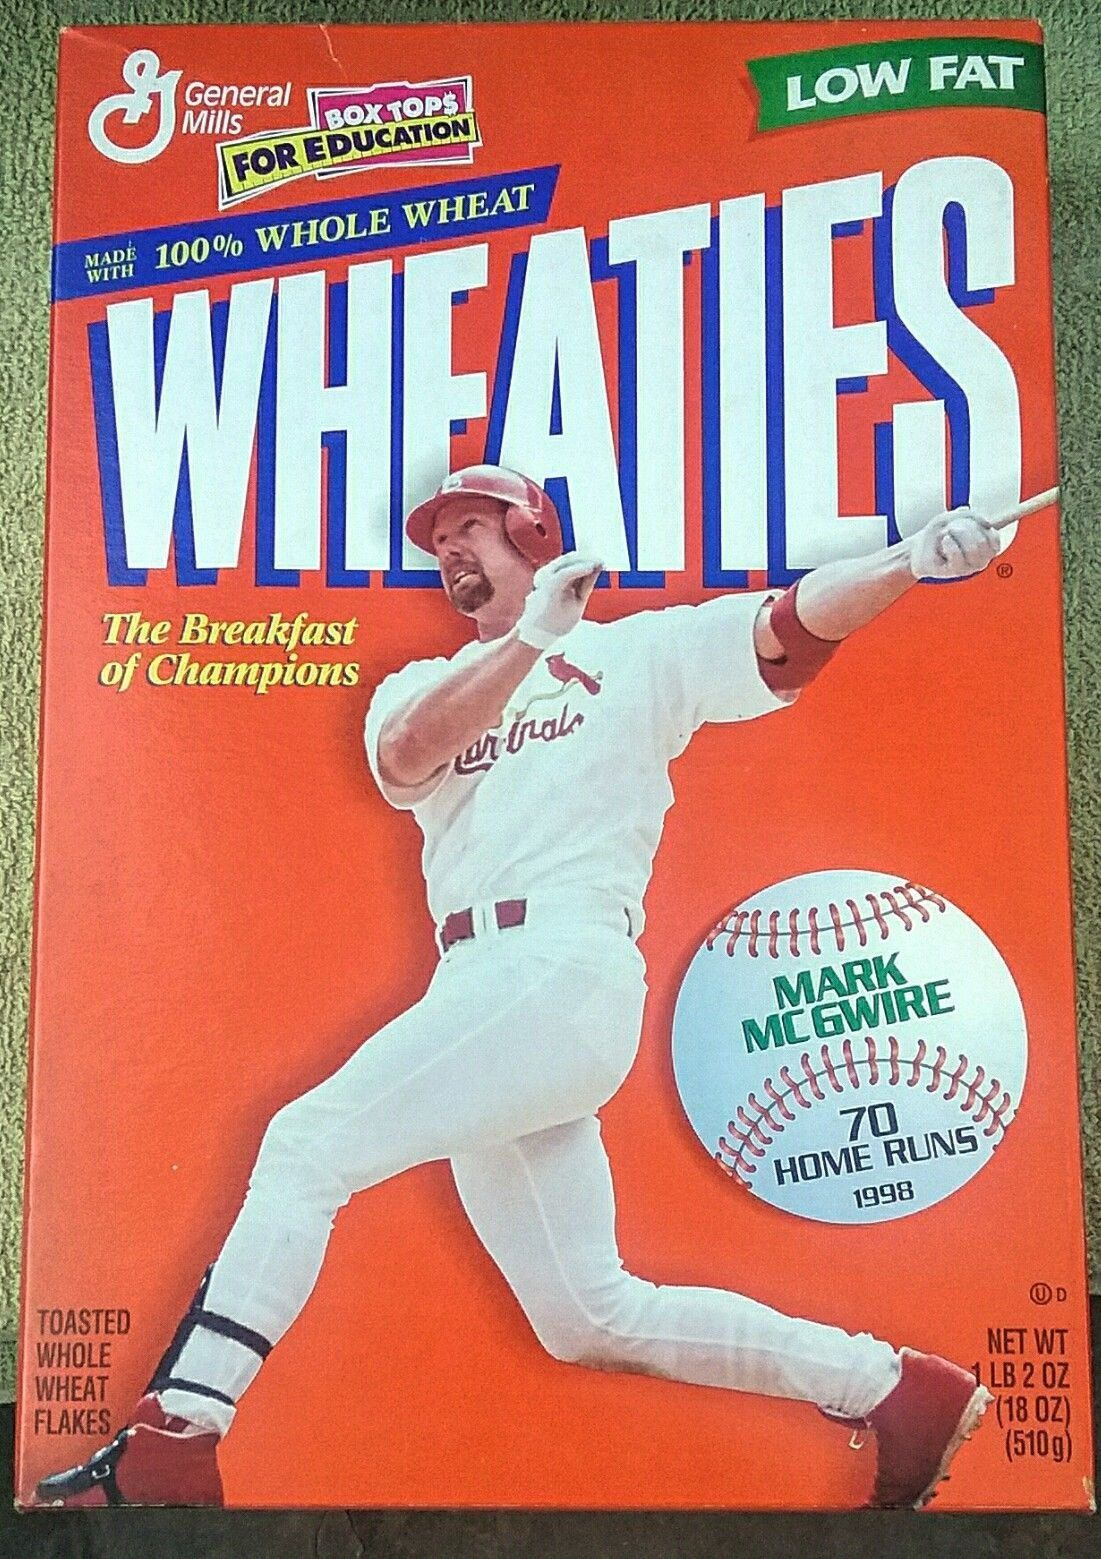 1998 Wheaties Mark Mcgwire 70 Home Run Cereal Box 90s Vintage Vtg